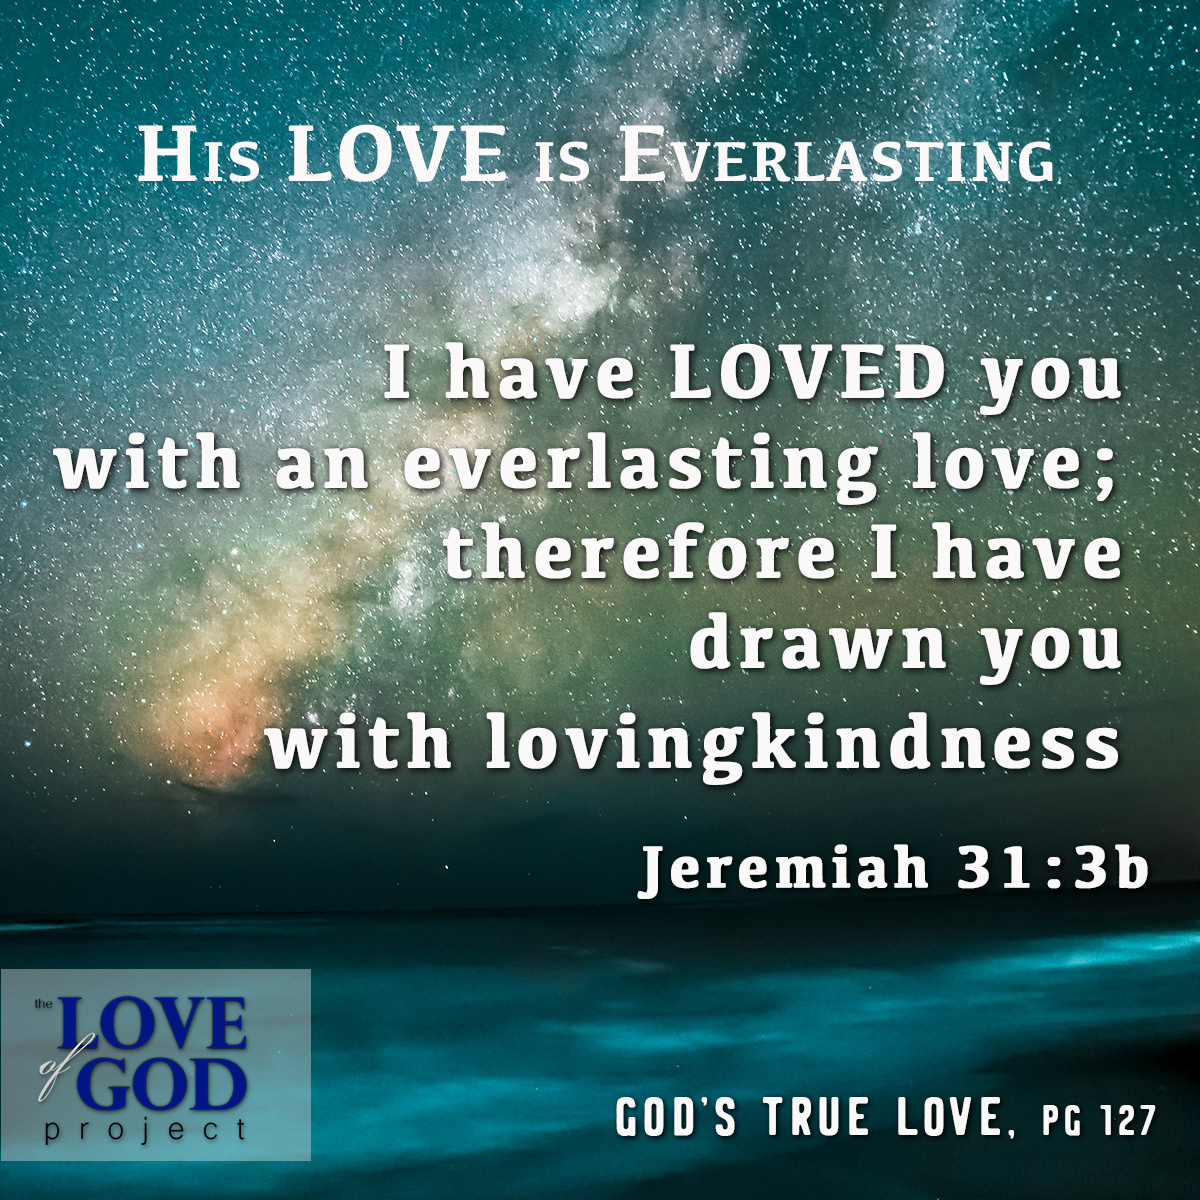 May 2019 – The Love of God Project